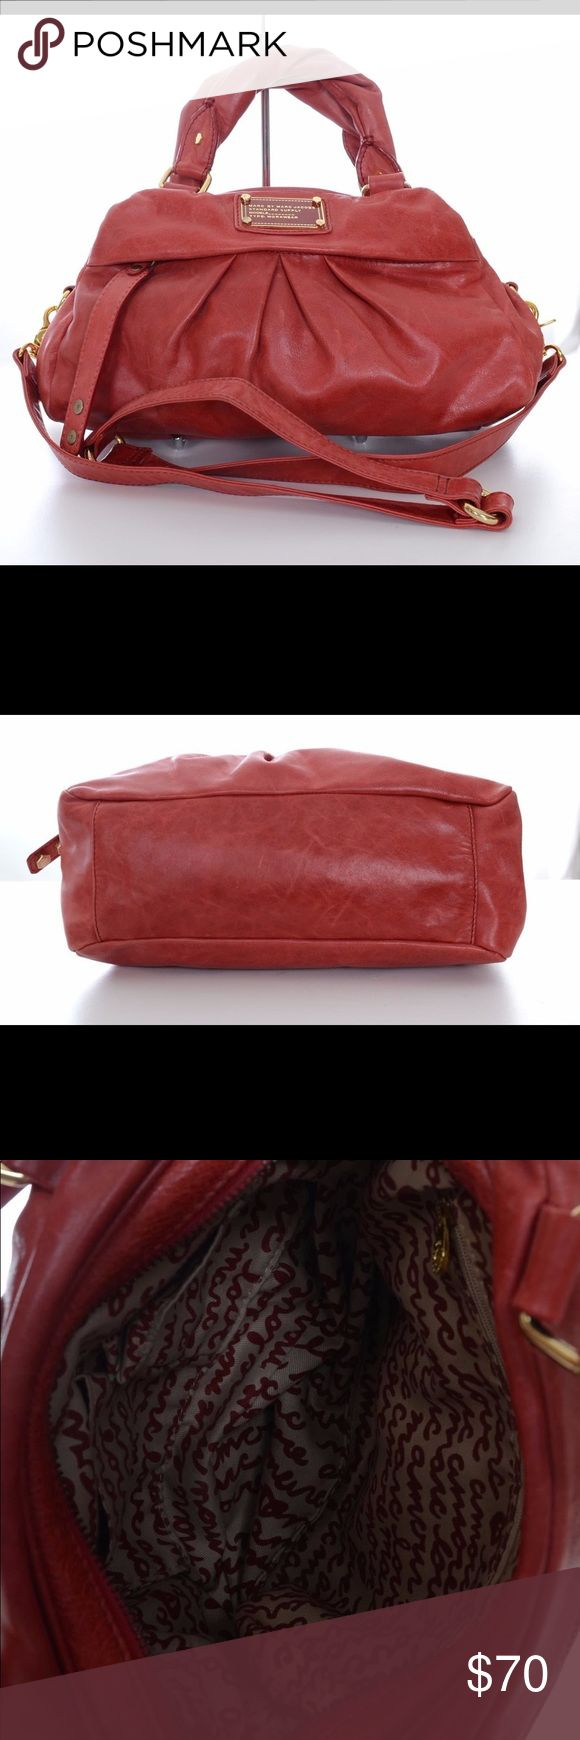 Marc Jacobs Purse Preowned but in very good condition. Distressed red leather with gold accents. Very clean inside. Marc Jacobs Bags Satchels